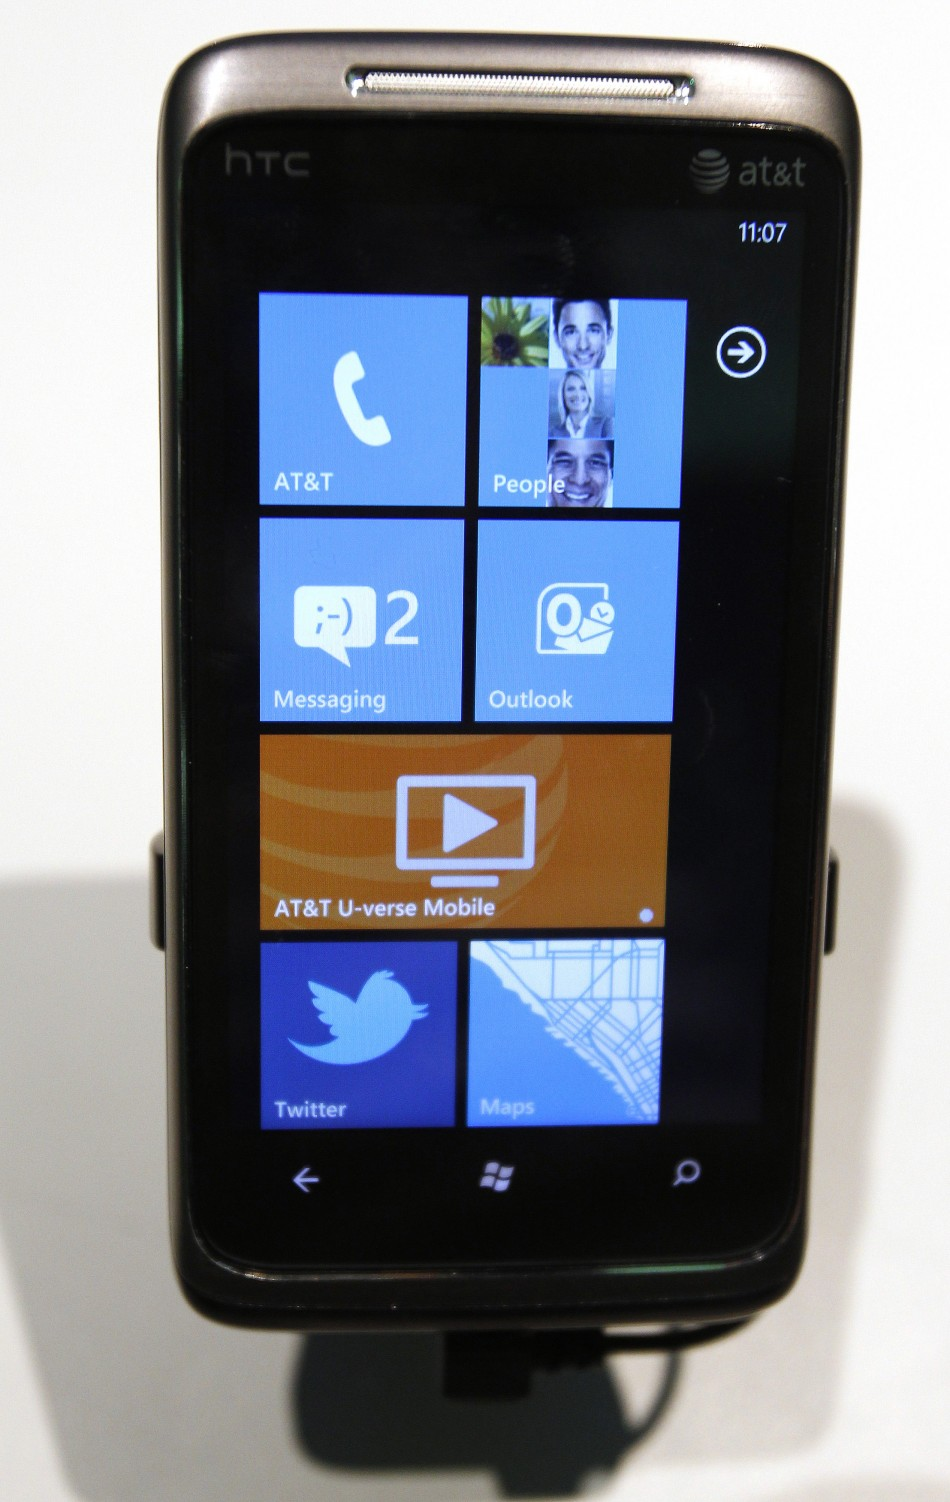 Windows Phone Mobile OS all set to takeover BlackBerry